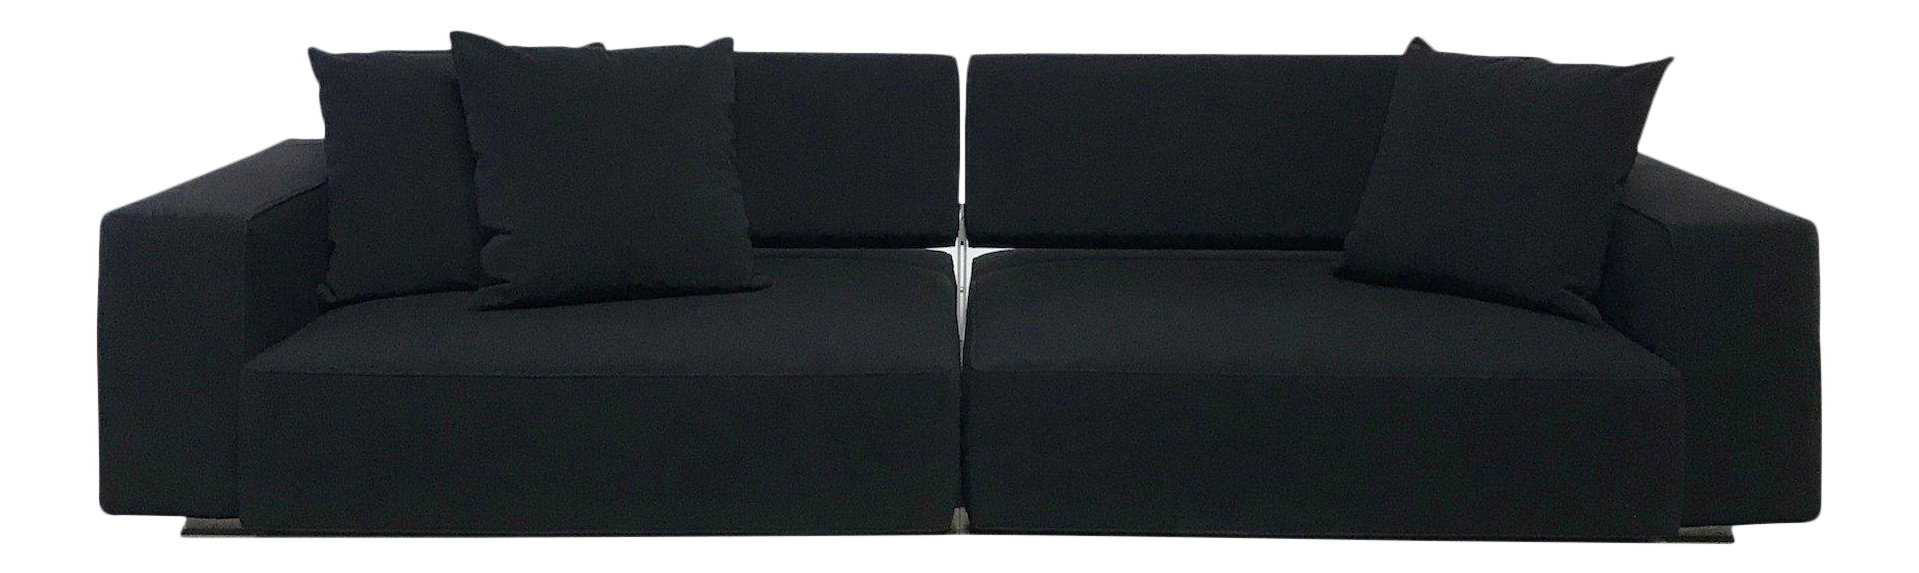 Bb italia furniture prices Maxalto Modern Paolo Piva For Bb Italia andy Sofa For Sale Bb Italia Gently Used Bb Italia Furniture Up To 70 Off At Chairish